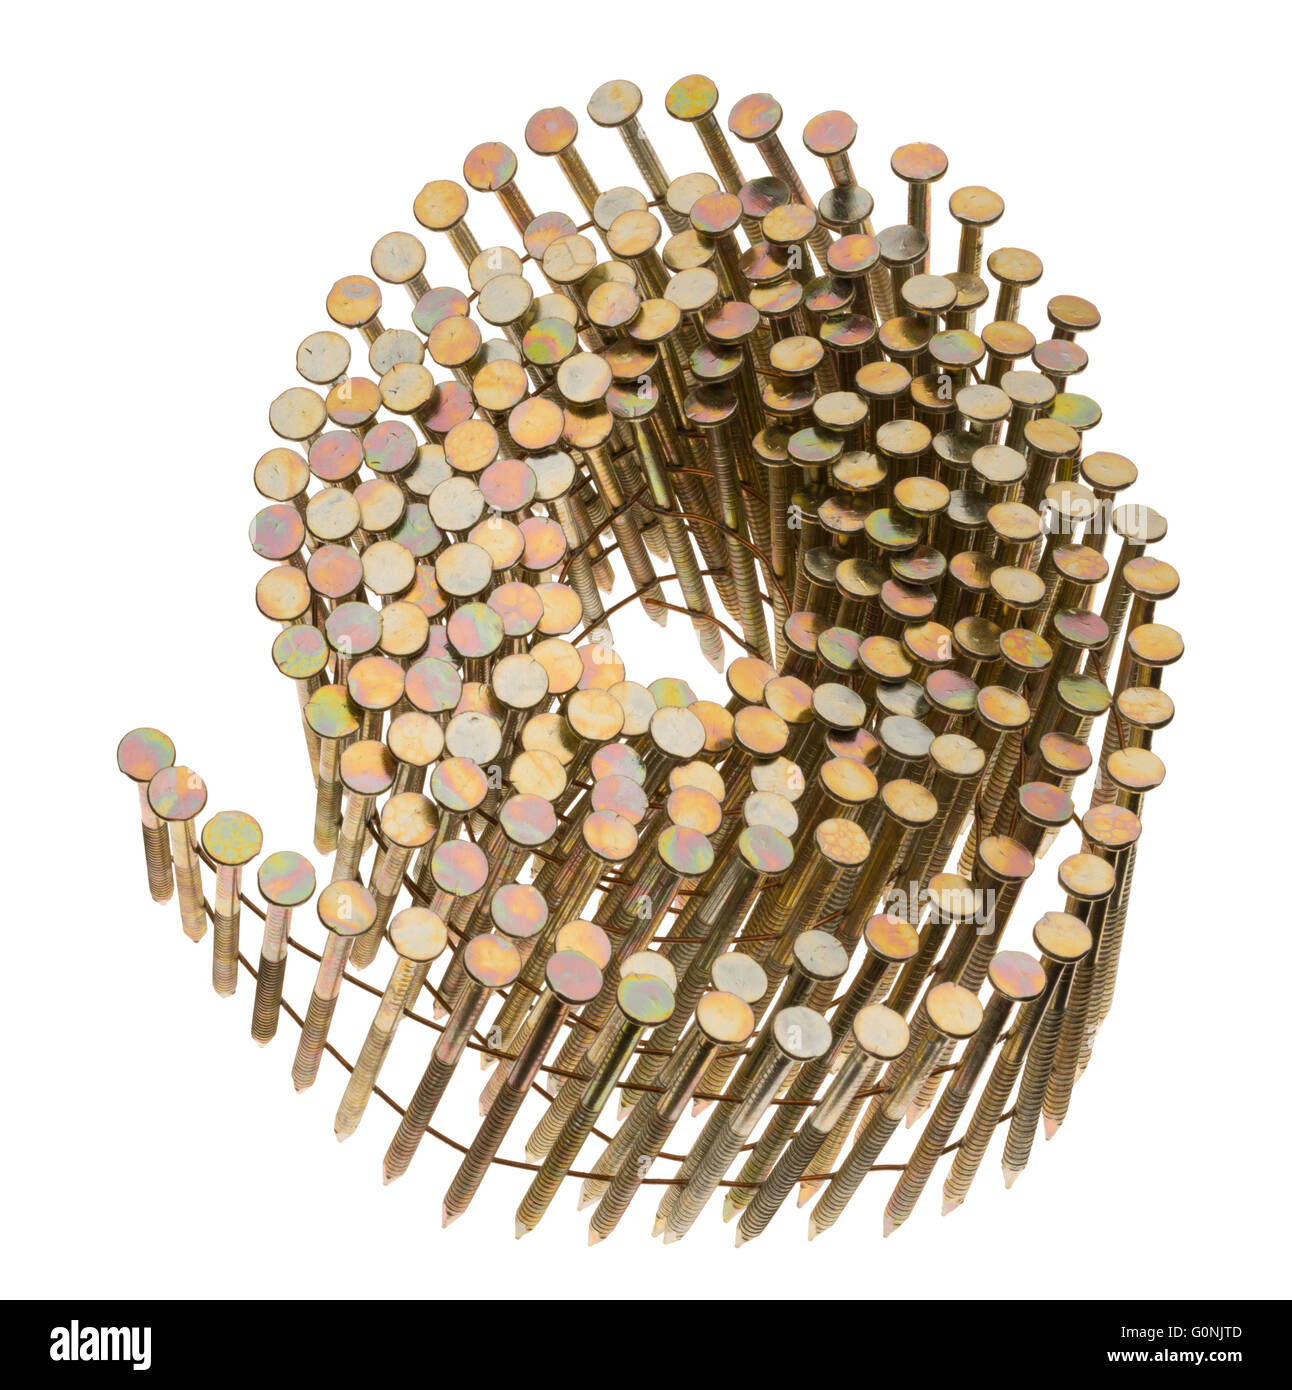 Coil collated nails for a nail gun. - Stock Image